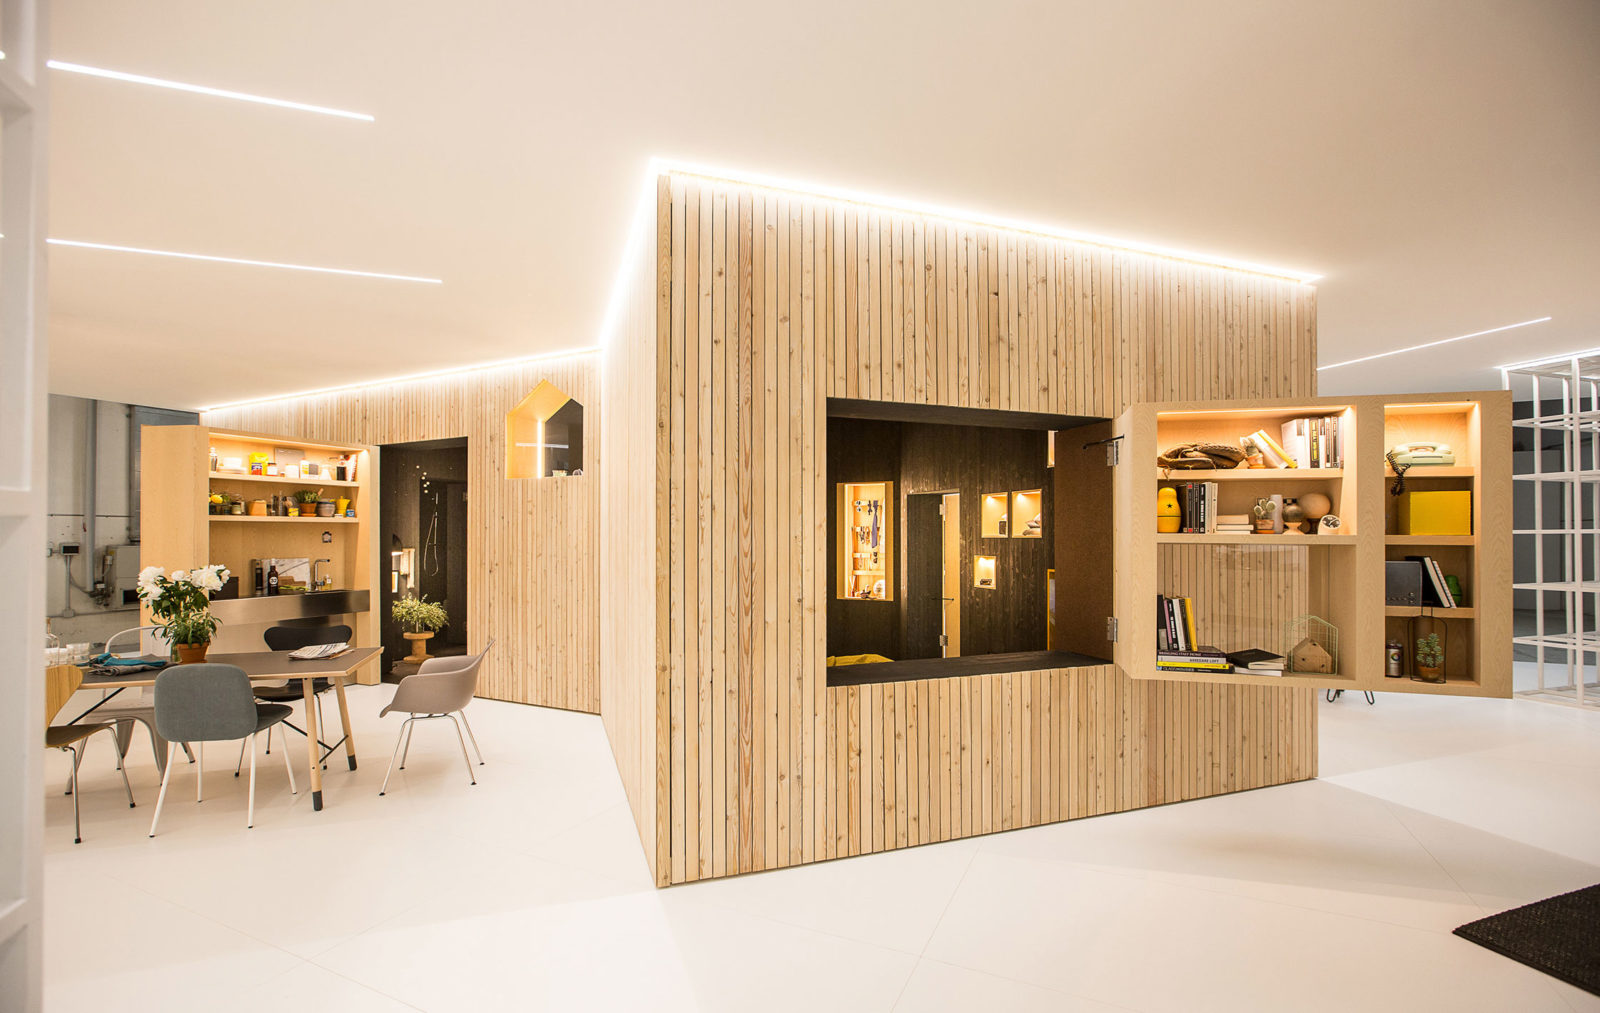 A 30-square-metre apartment that forms part of a micro neighbourhood